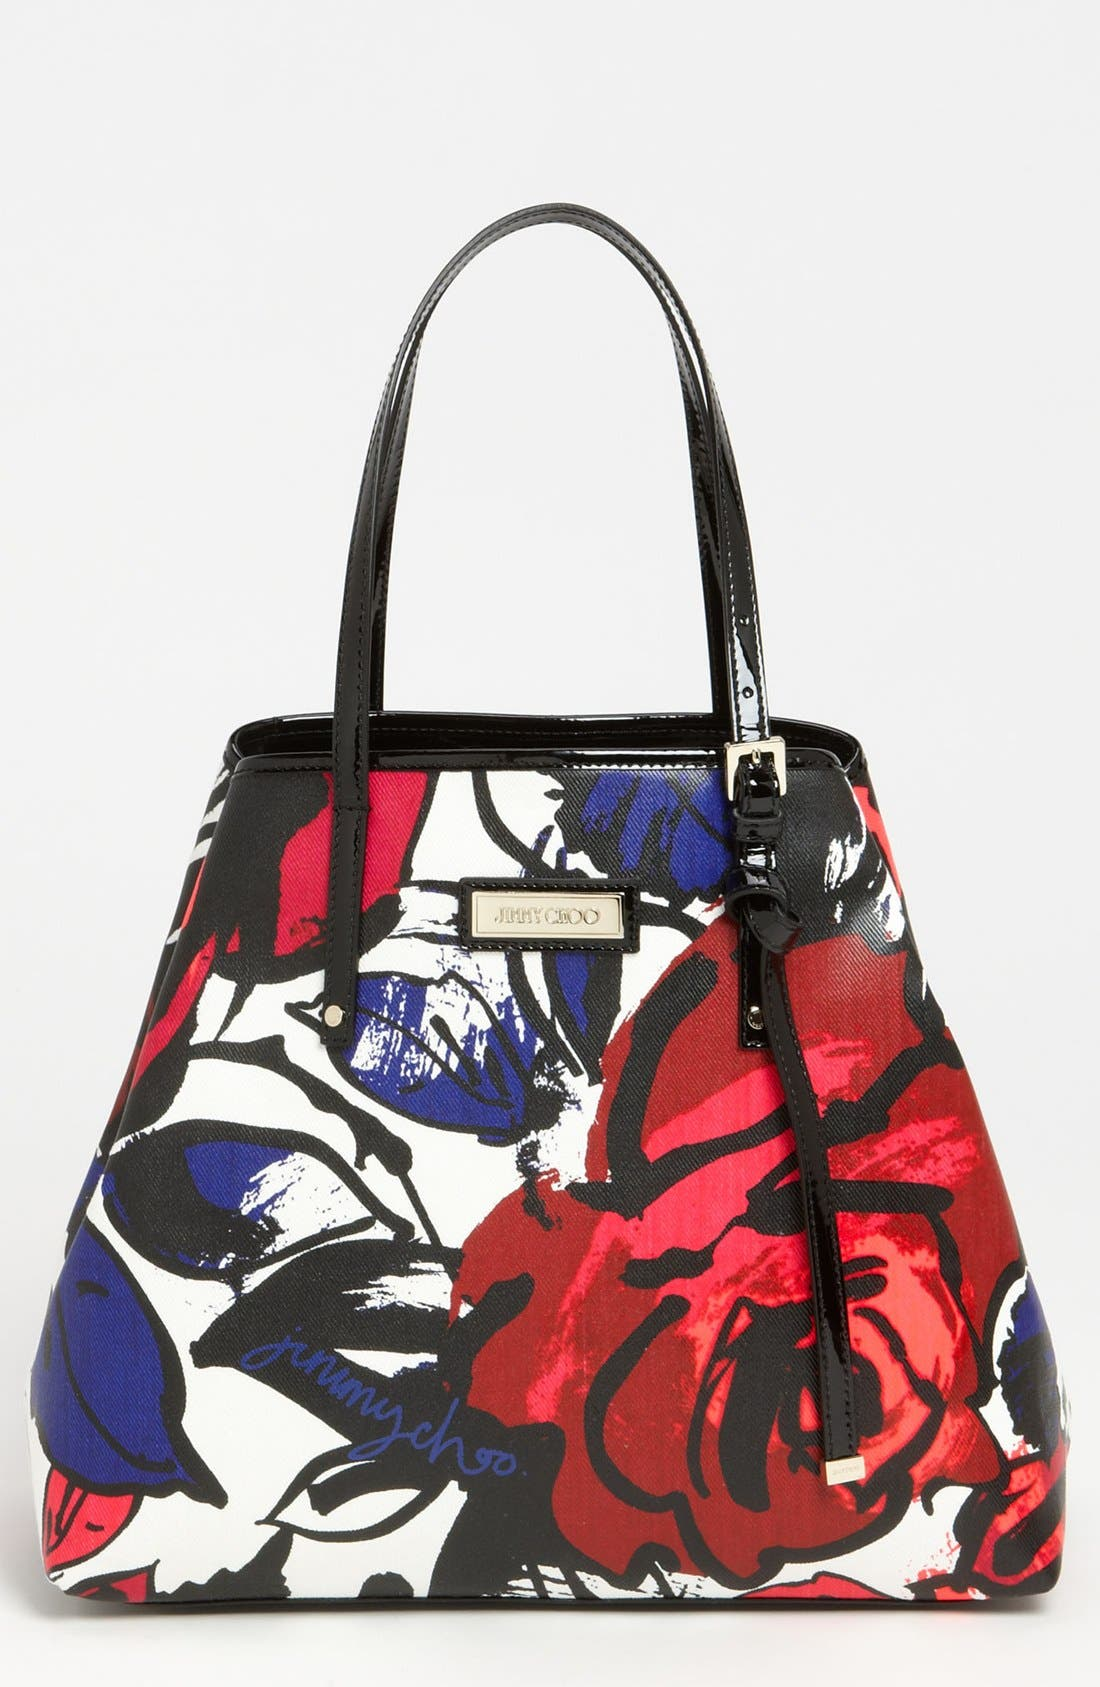 Alternate Image 1 Selected - Jimmy Choo 'Sasha' Floral Tote